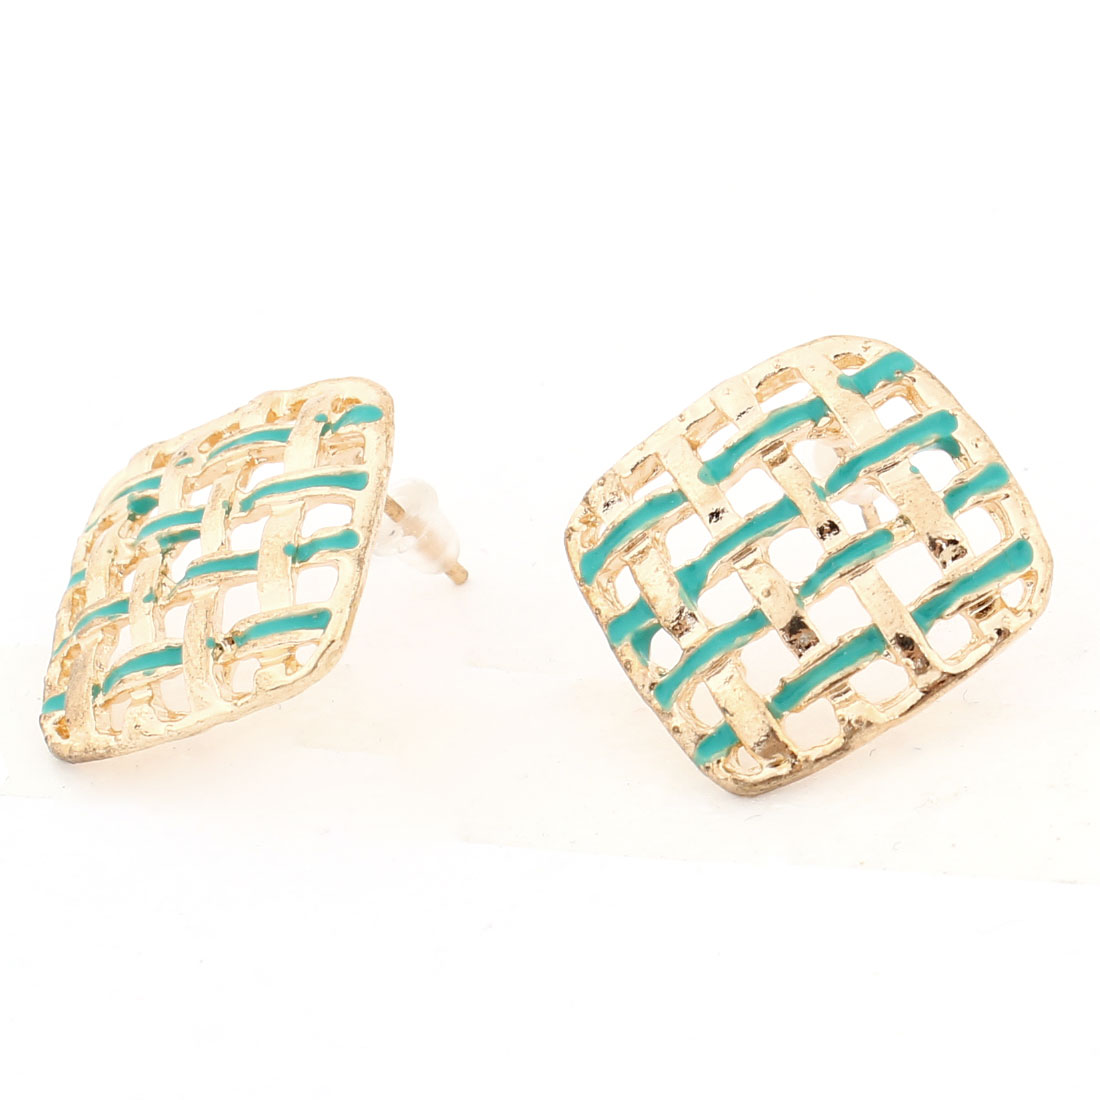 Pair Gold Tone Hollow Out Square Shaped Ornament Stud Earrings Decor for Lady